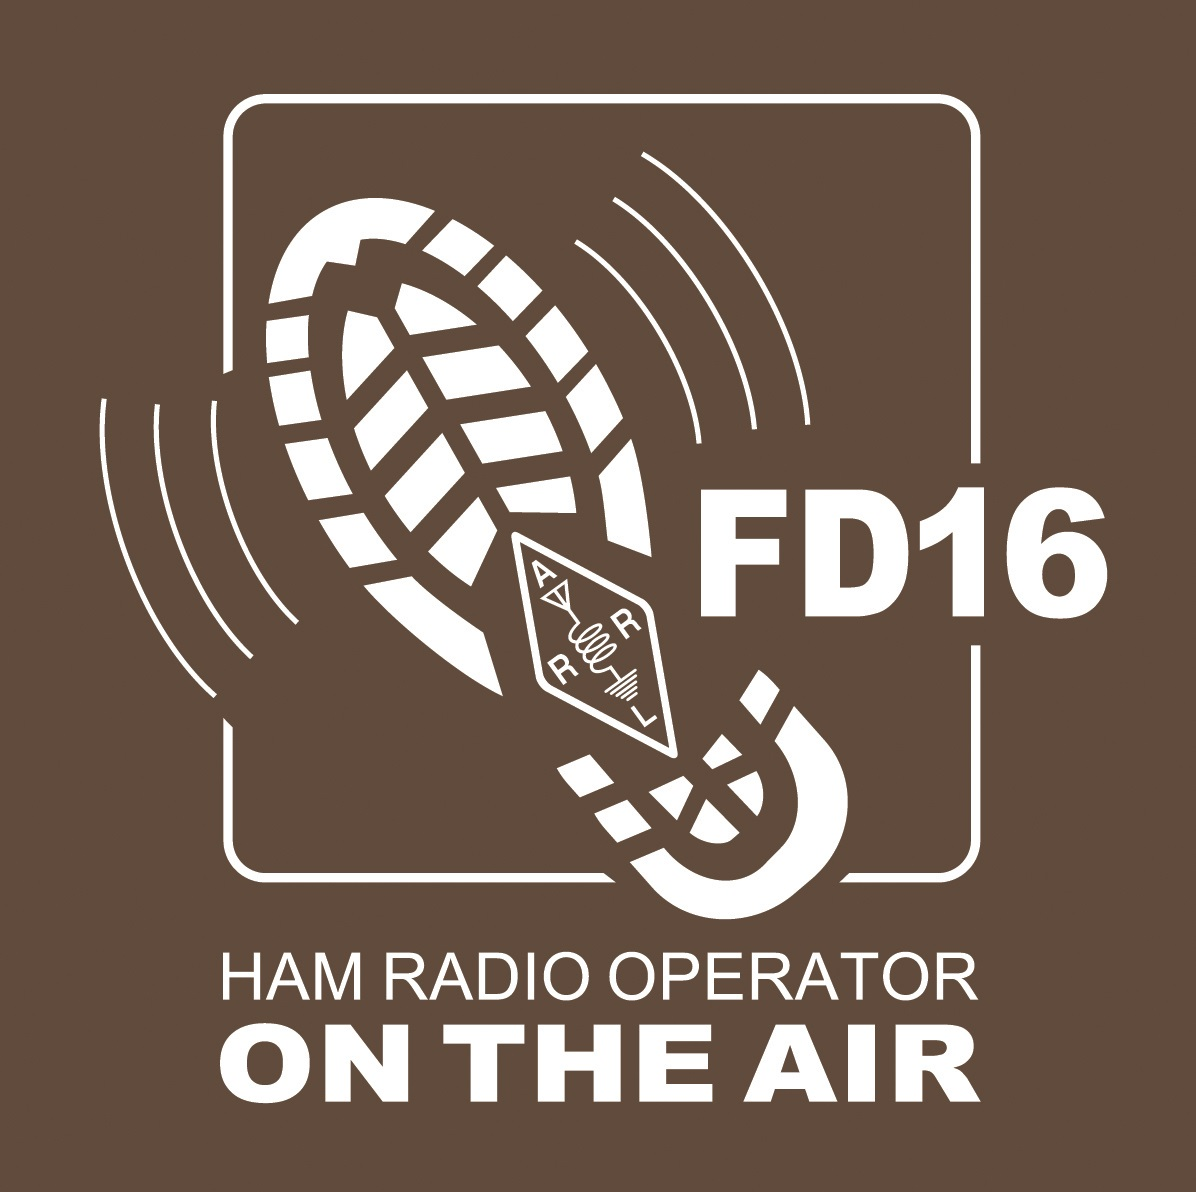 "ARRL Field Day 2016 logo showing a boot tread with the ARRL logo enbedded next to ""FD16""."